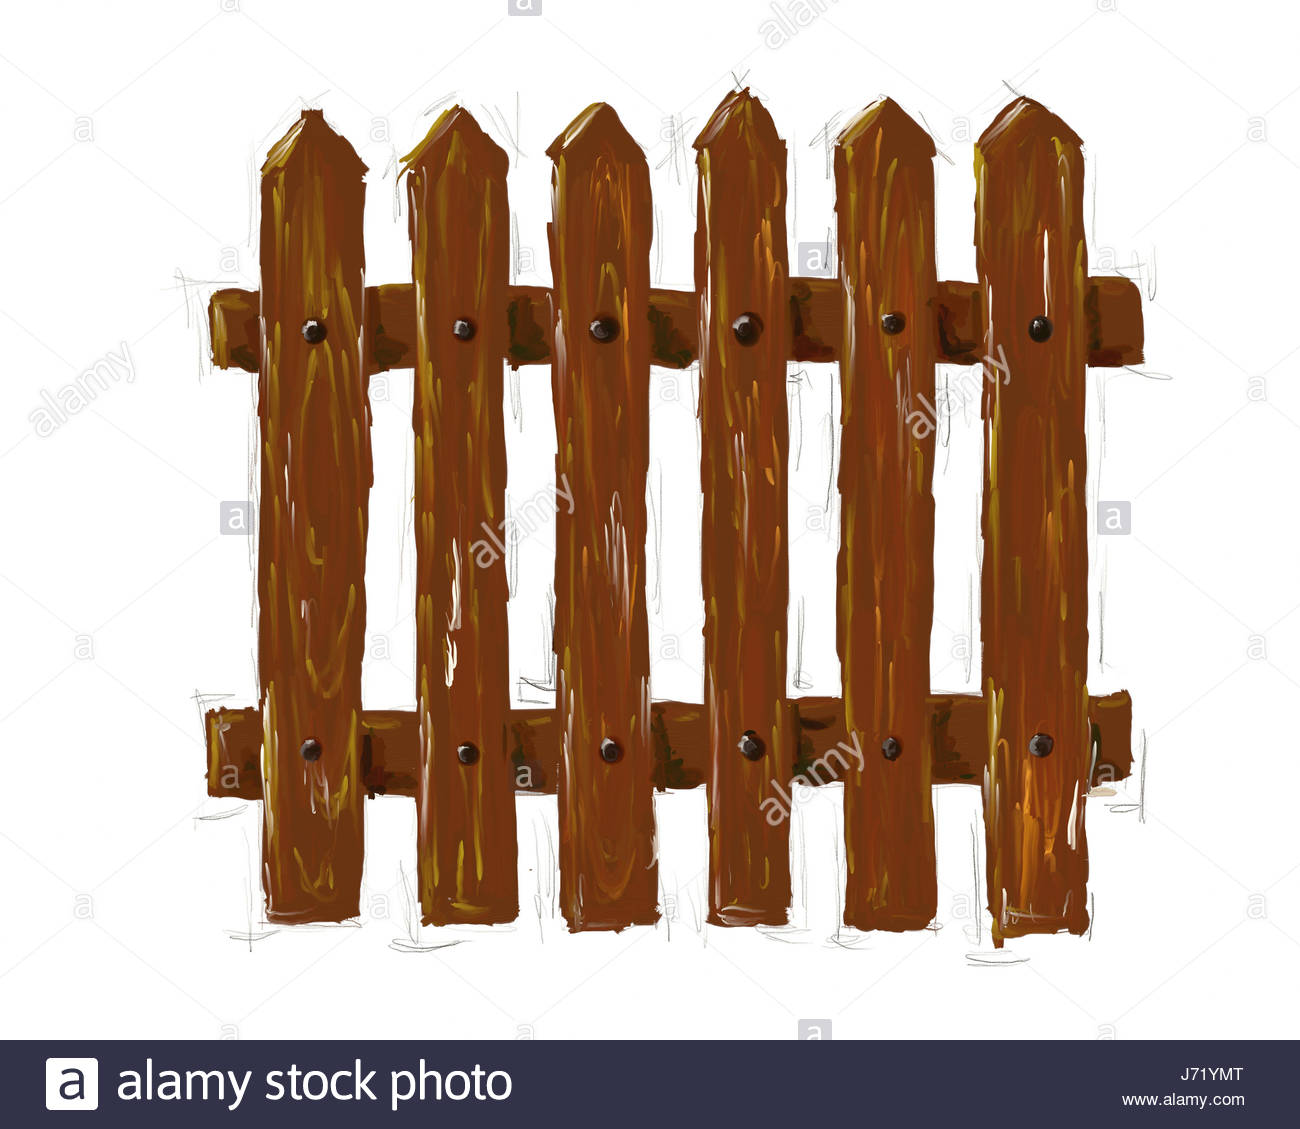 Wooden Fence Drawing at GetDrawings.com | Free for personal use ...